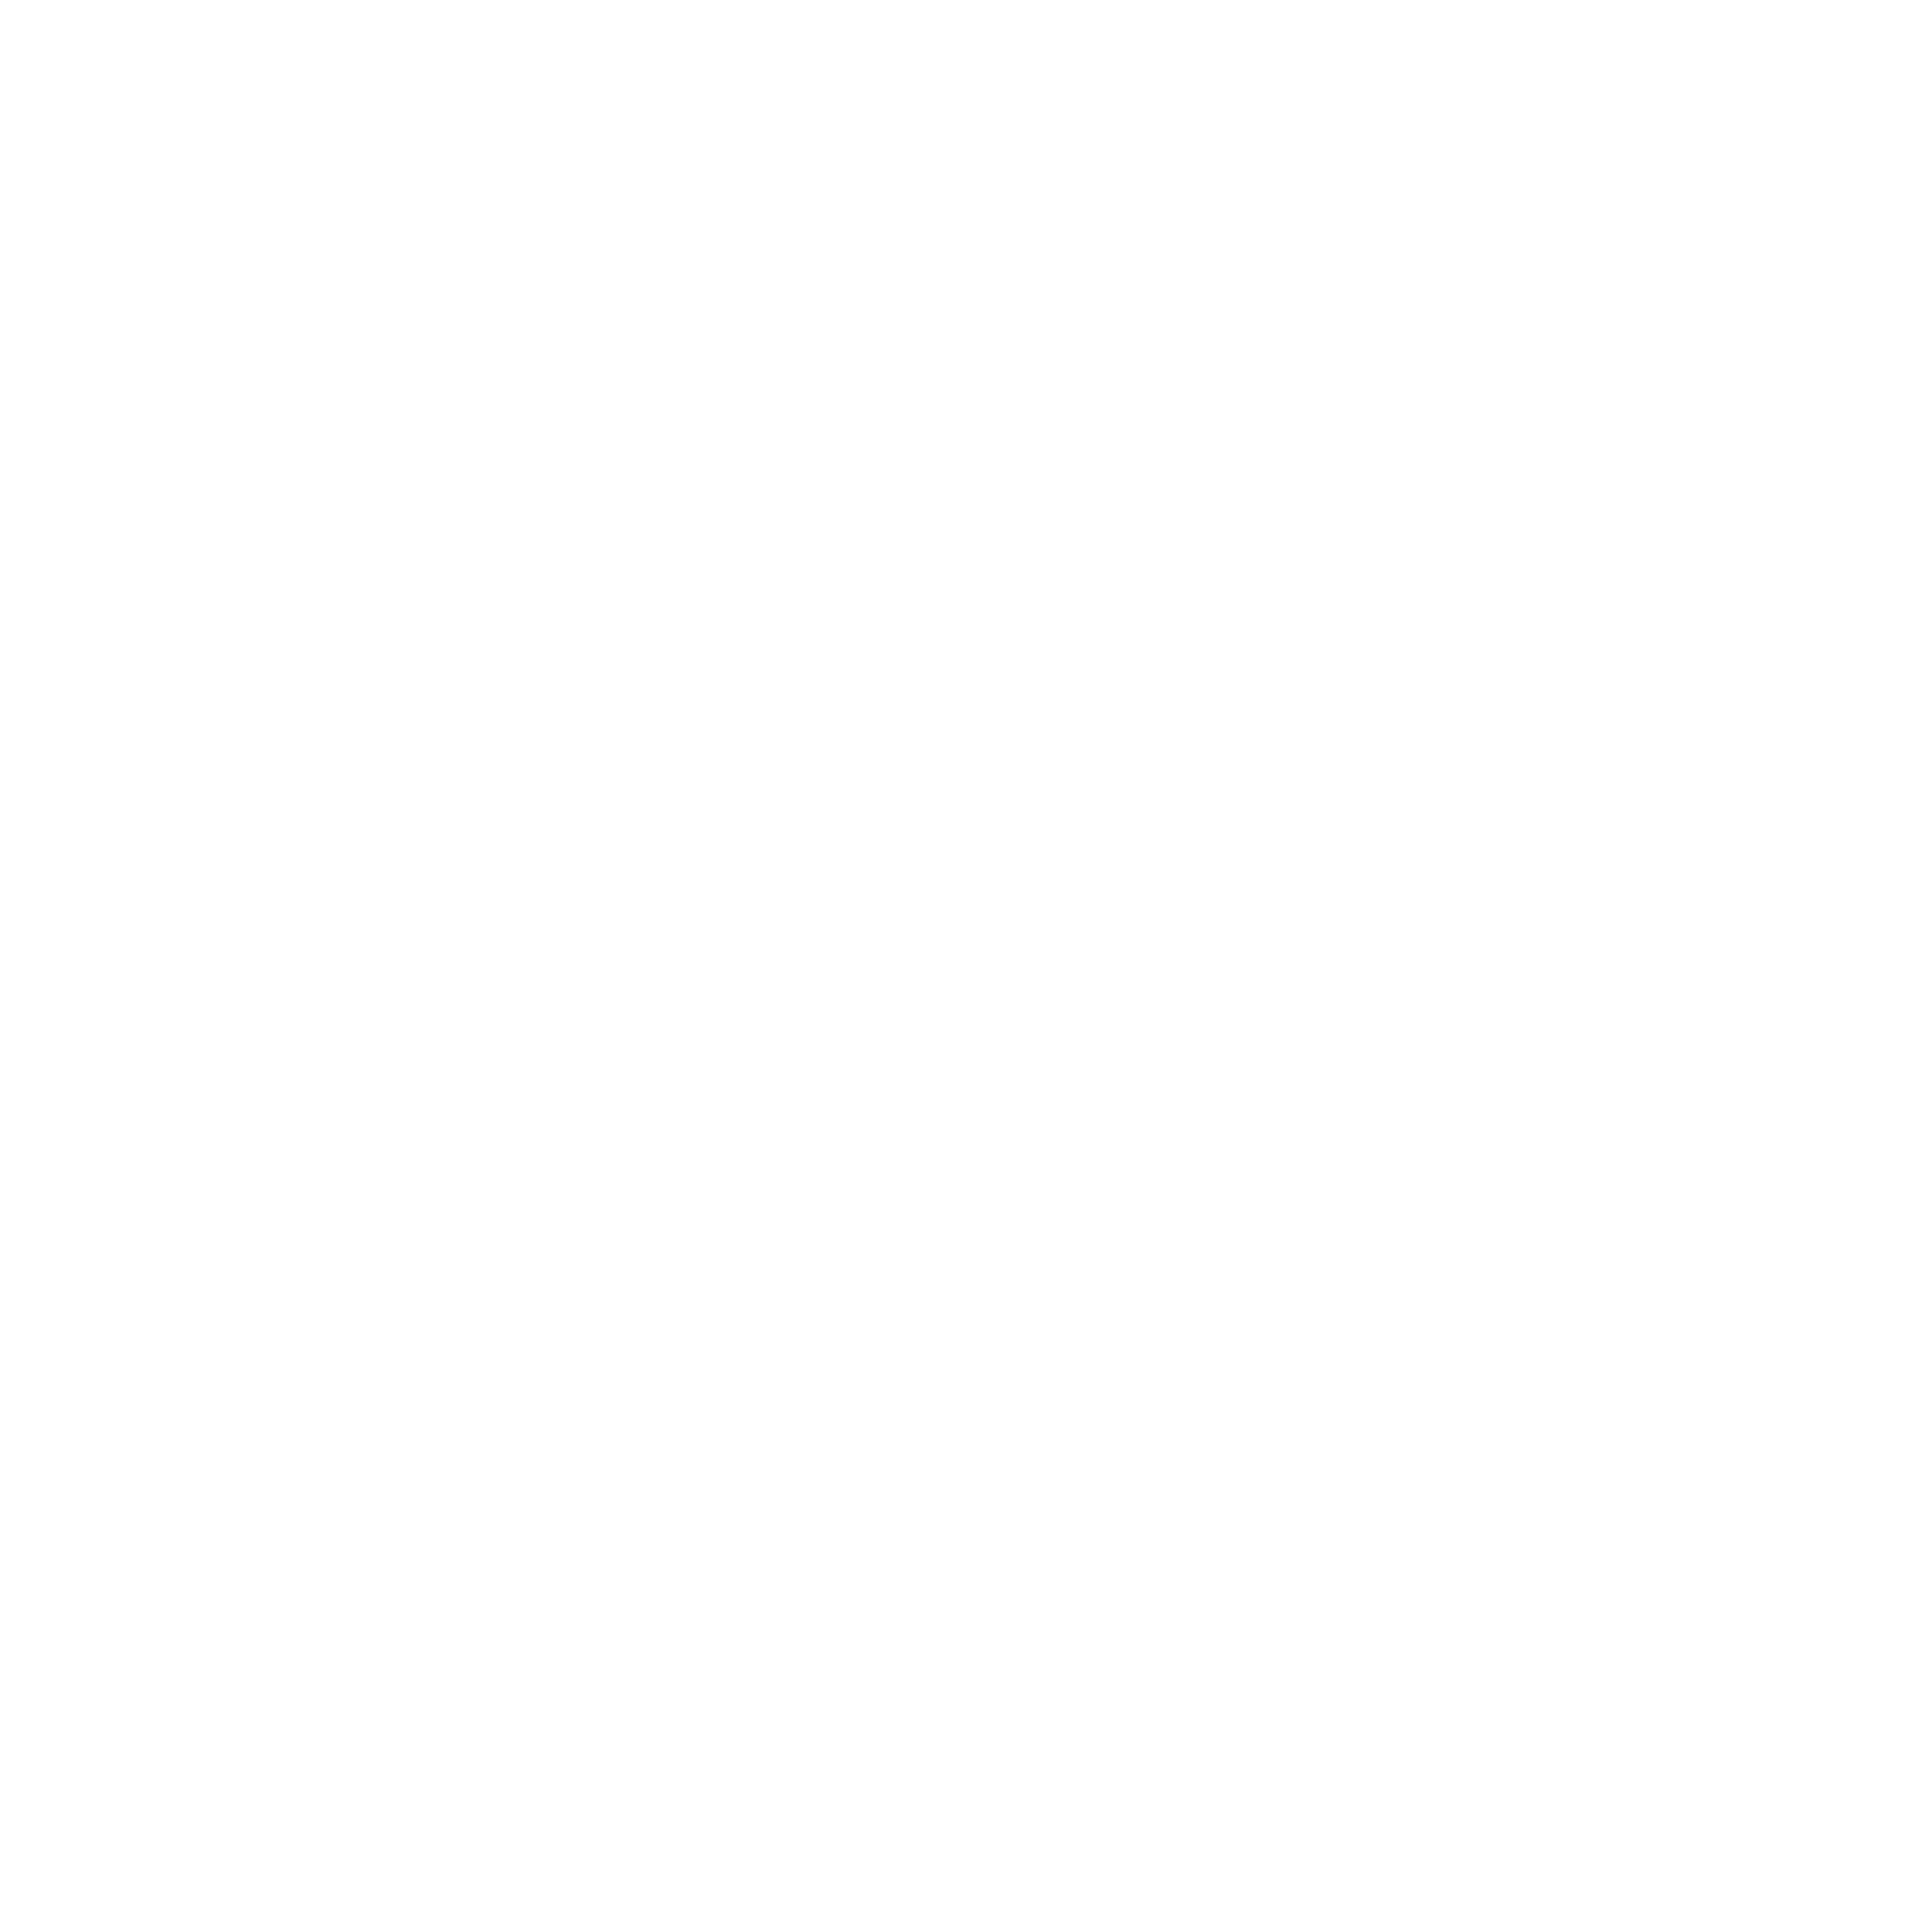 ME Solutions Logo